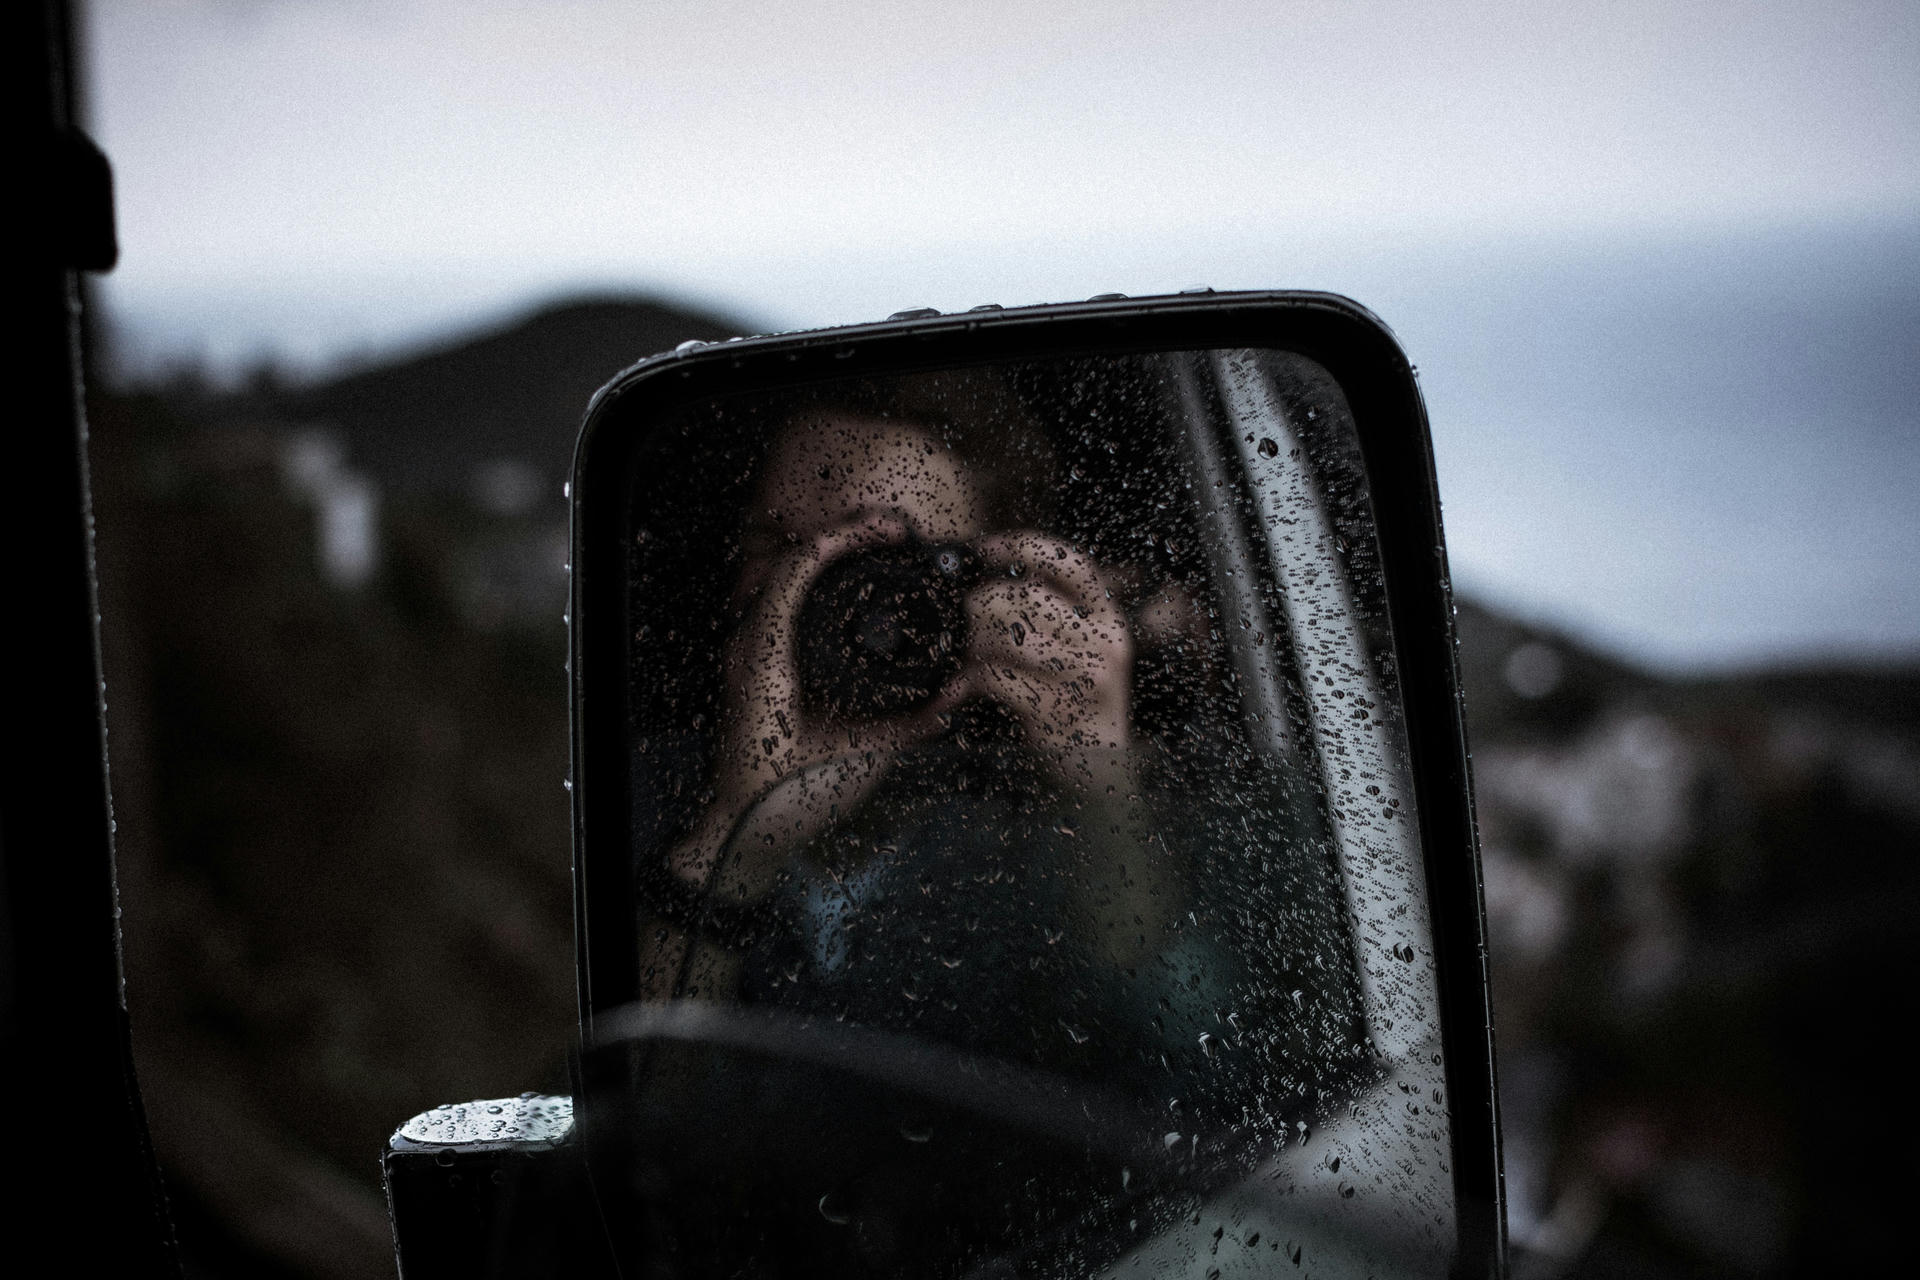 Photographing oneself in a rainy mirror.